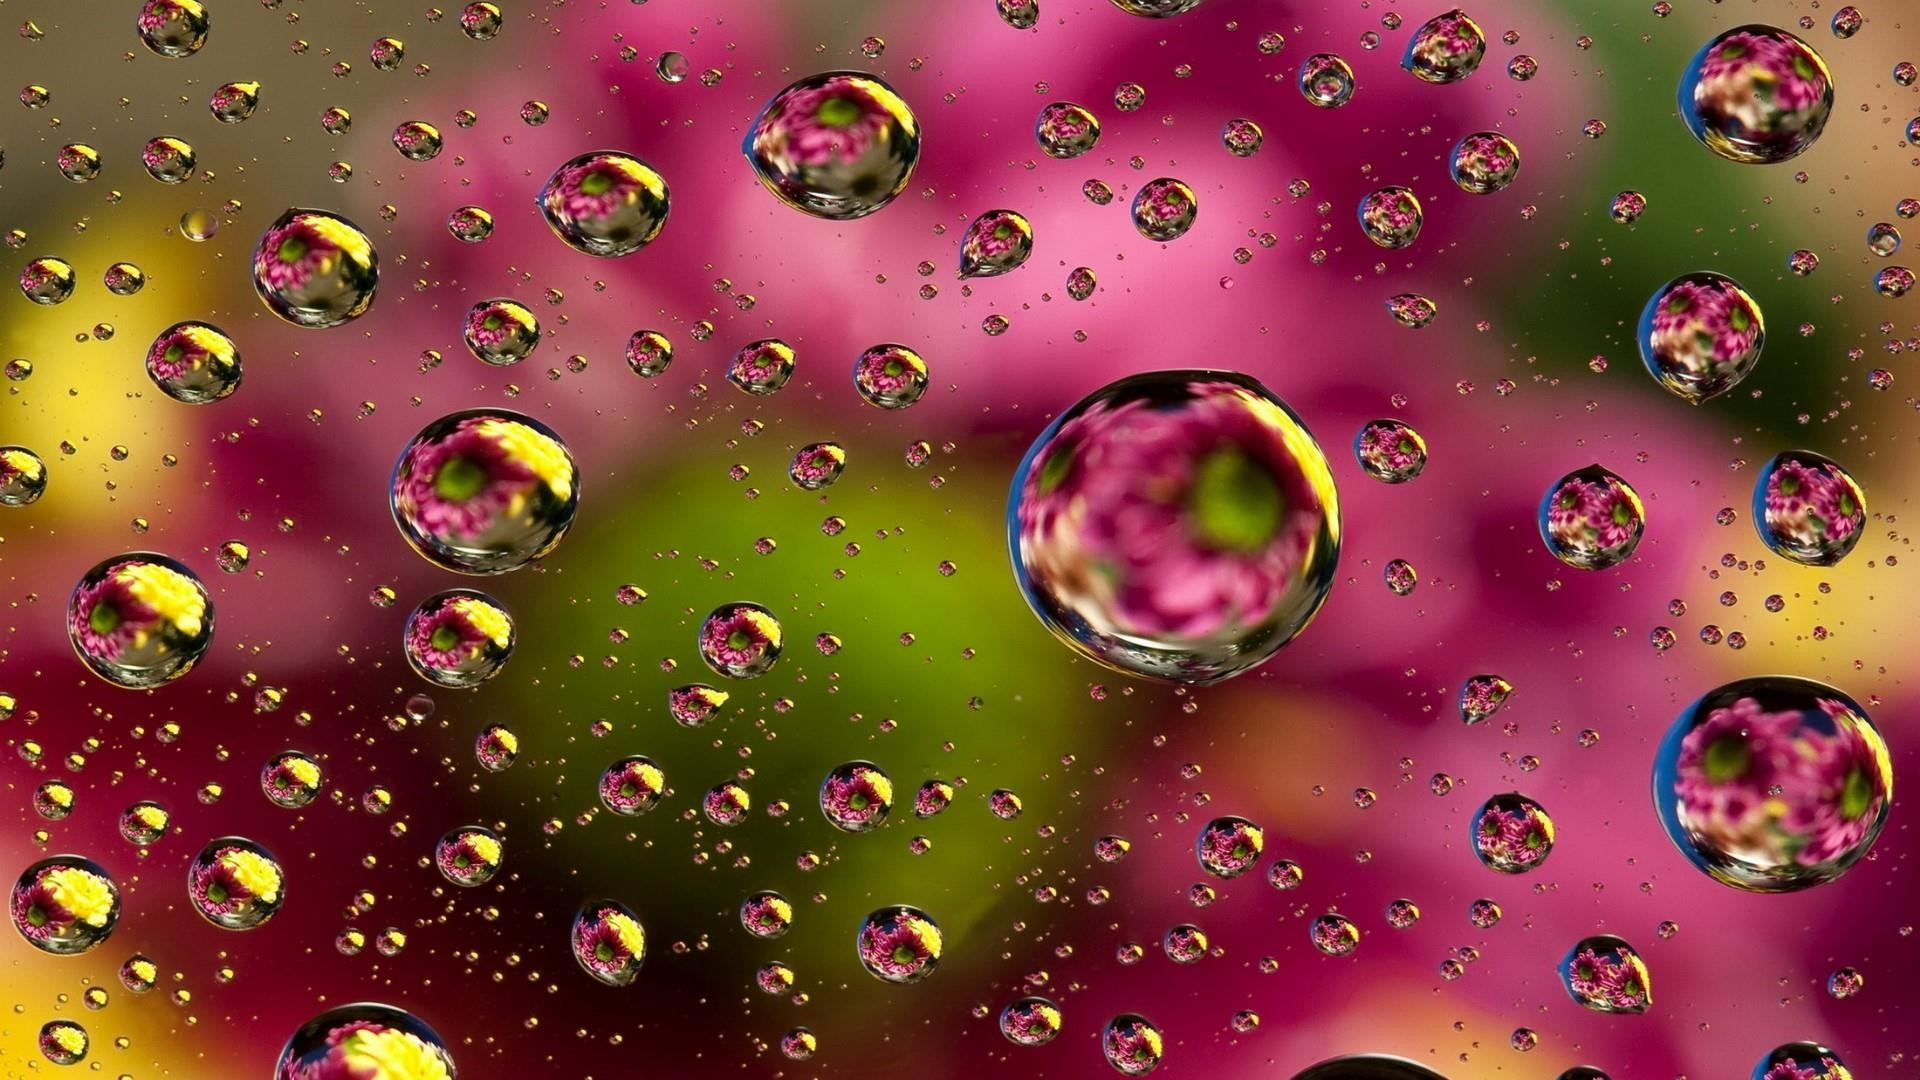 1920x1080, Colorful Waterdrops Wallpaper - Colorful Water Drops Wallpaper Hd - HD Wallpaper